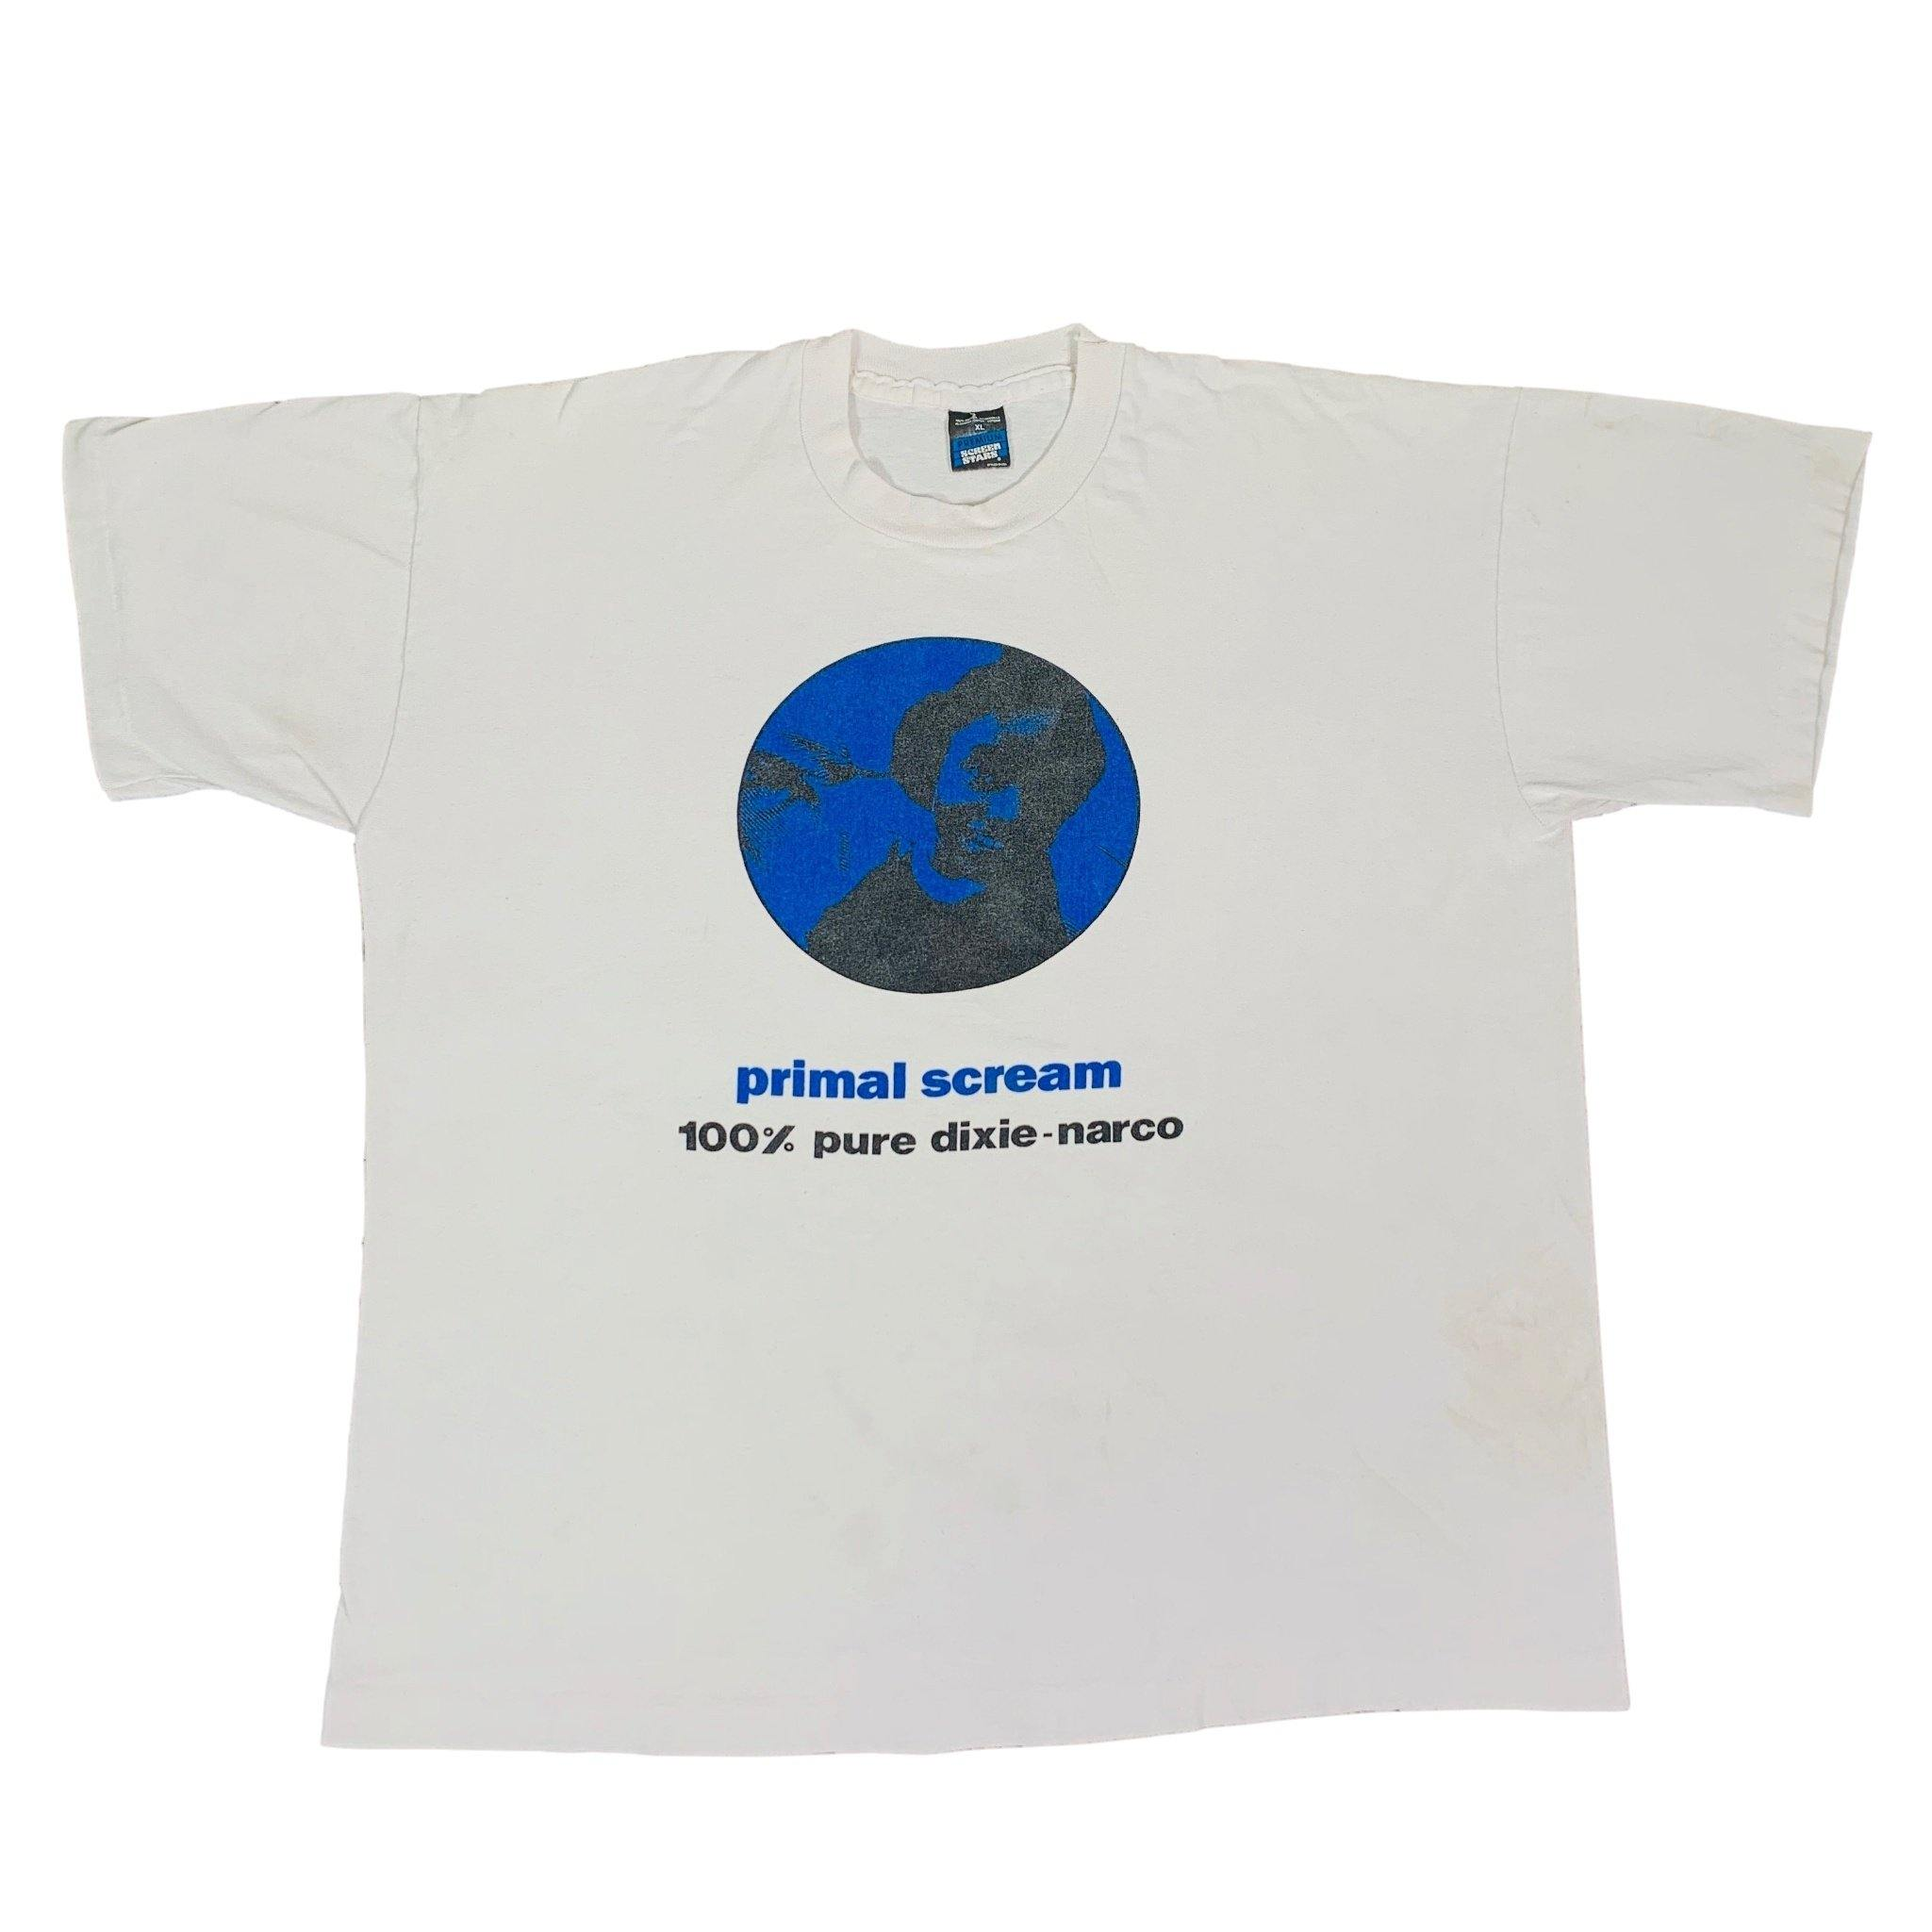 "Vintage Primal Scream ""Dixie-Narco EP"" T-Shirt"